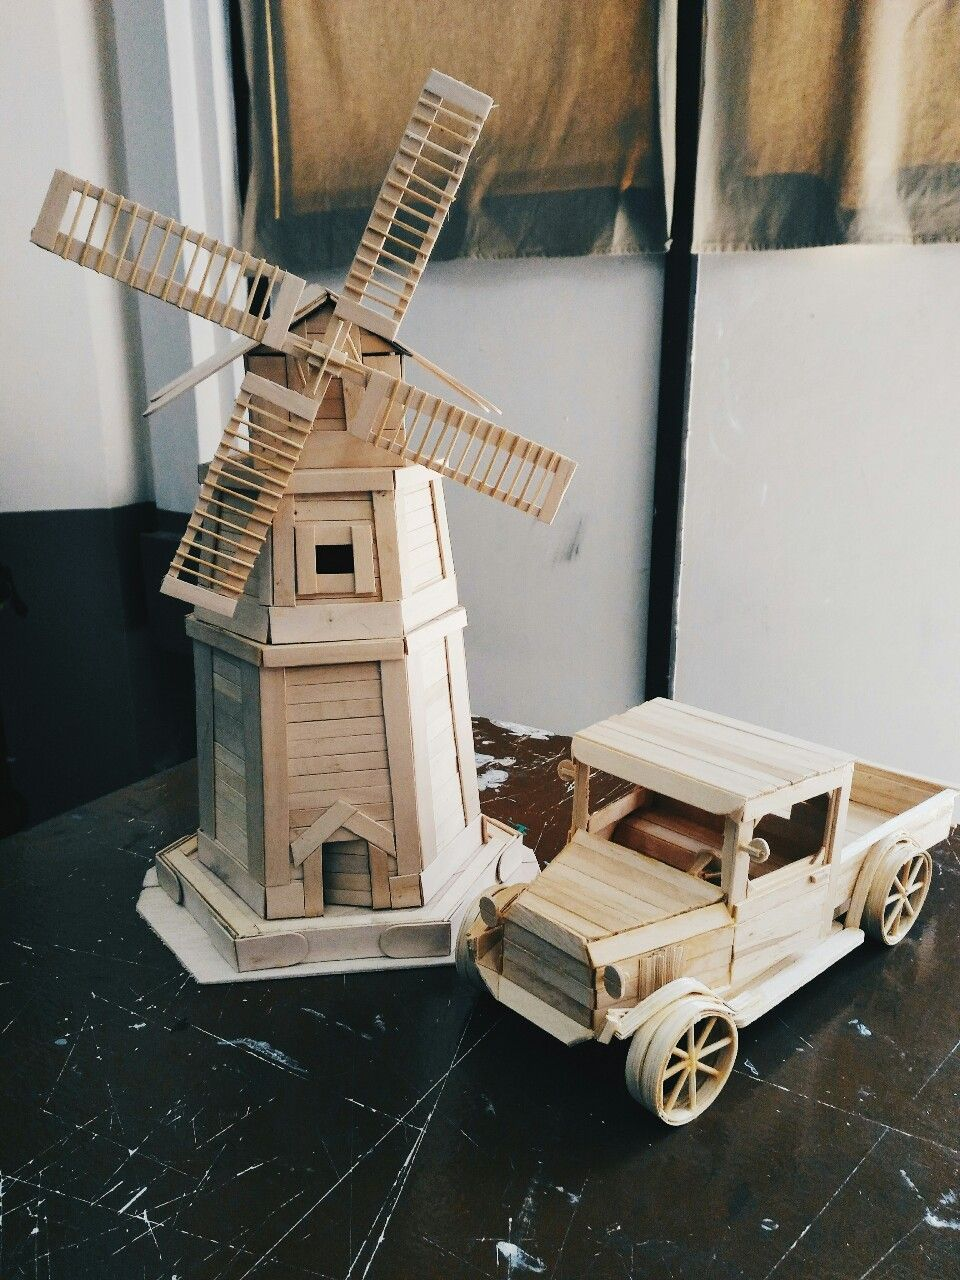 windmill made of popsicle sticks :-)) artmeee | popsicle